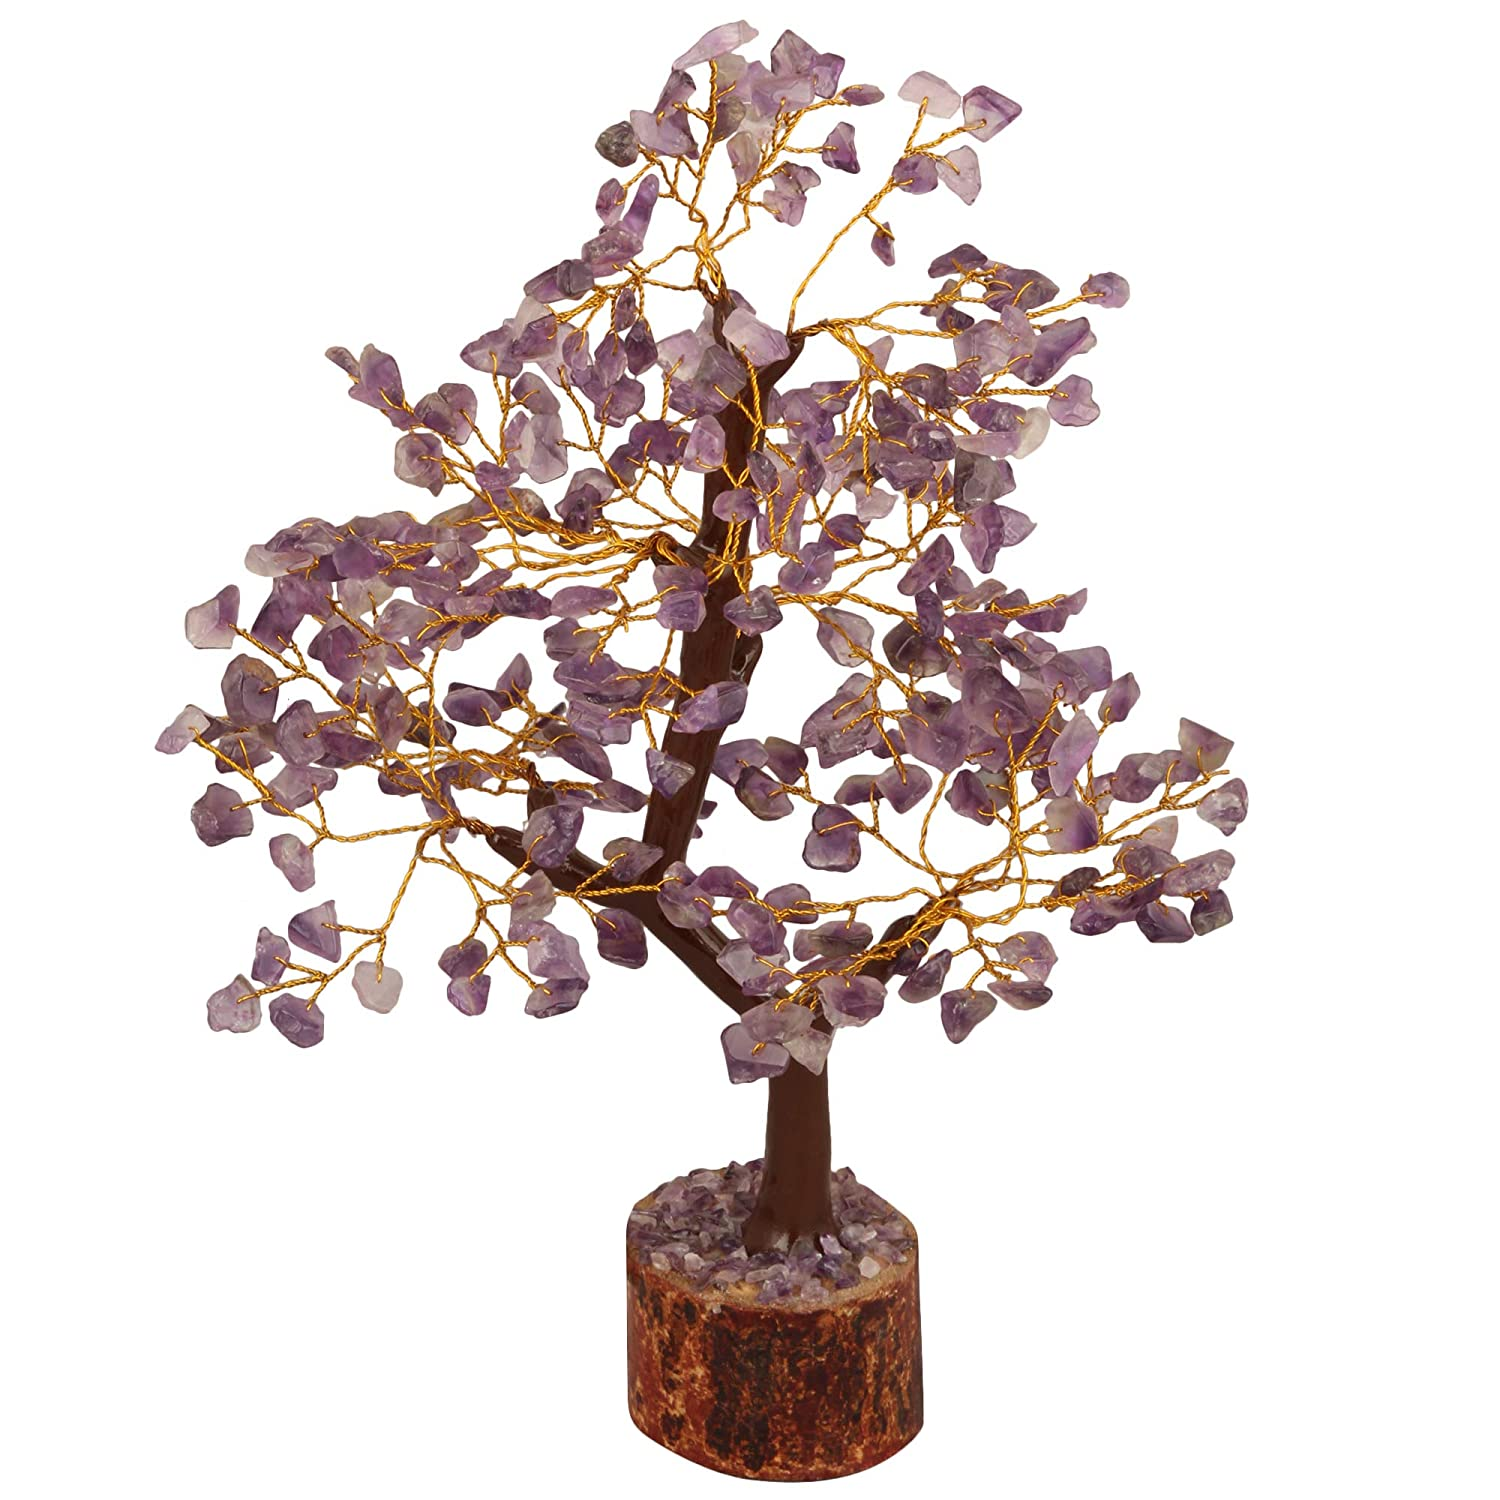 FASHIONZAADI Amethyst Bonsai Money Tree Feng Shui Crystal Gemstone Trees Chakra Stone Healing Crystals Good Luck Home Office Table Décor Health Prosperity Size 10-12 inch (Golden Wire)